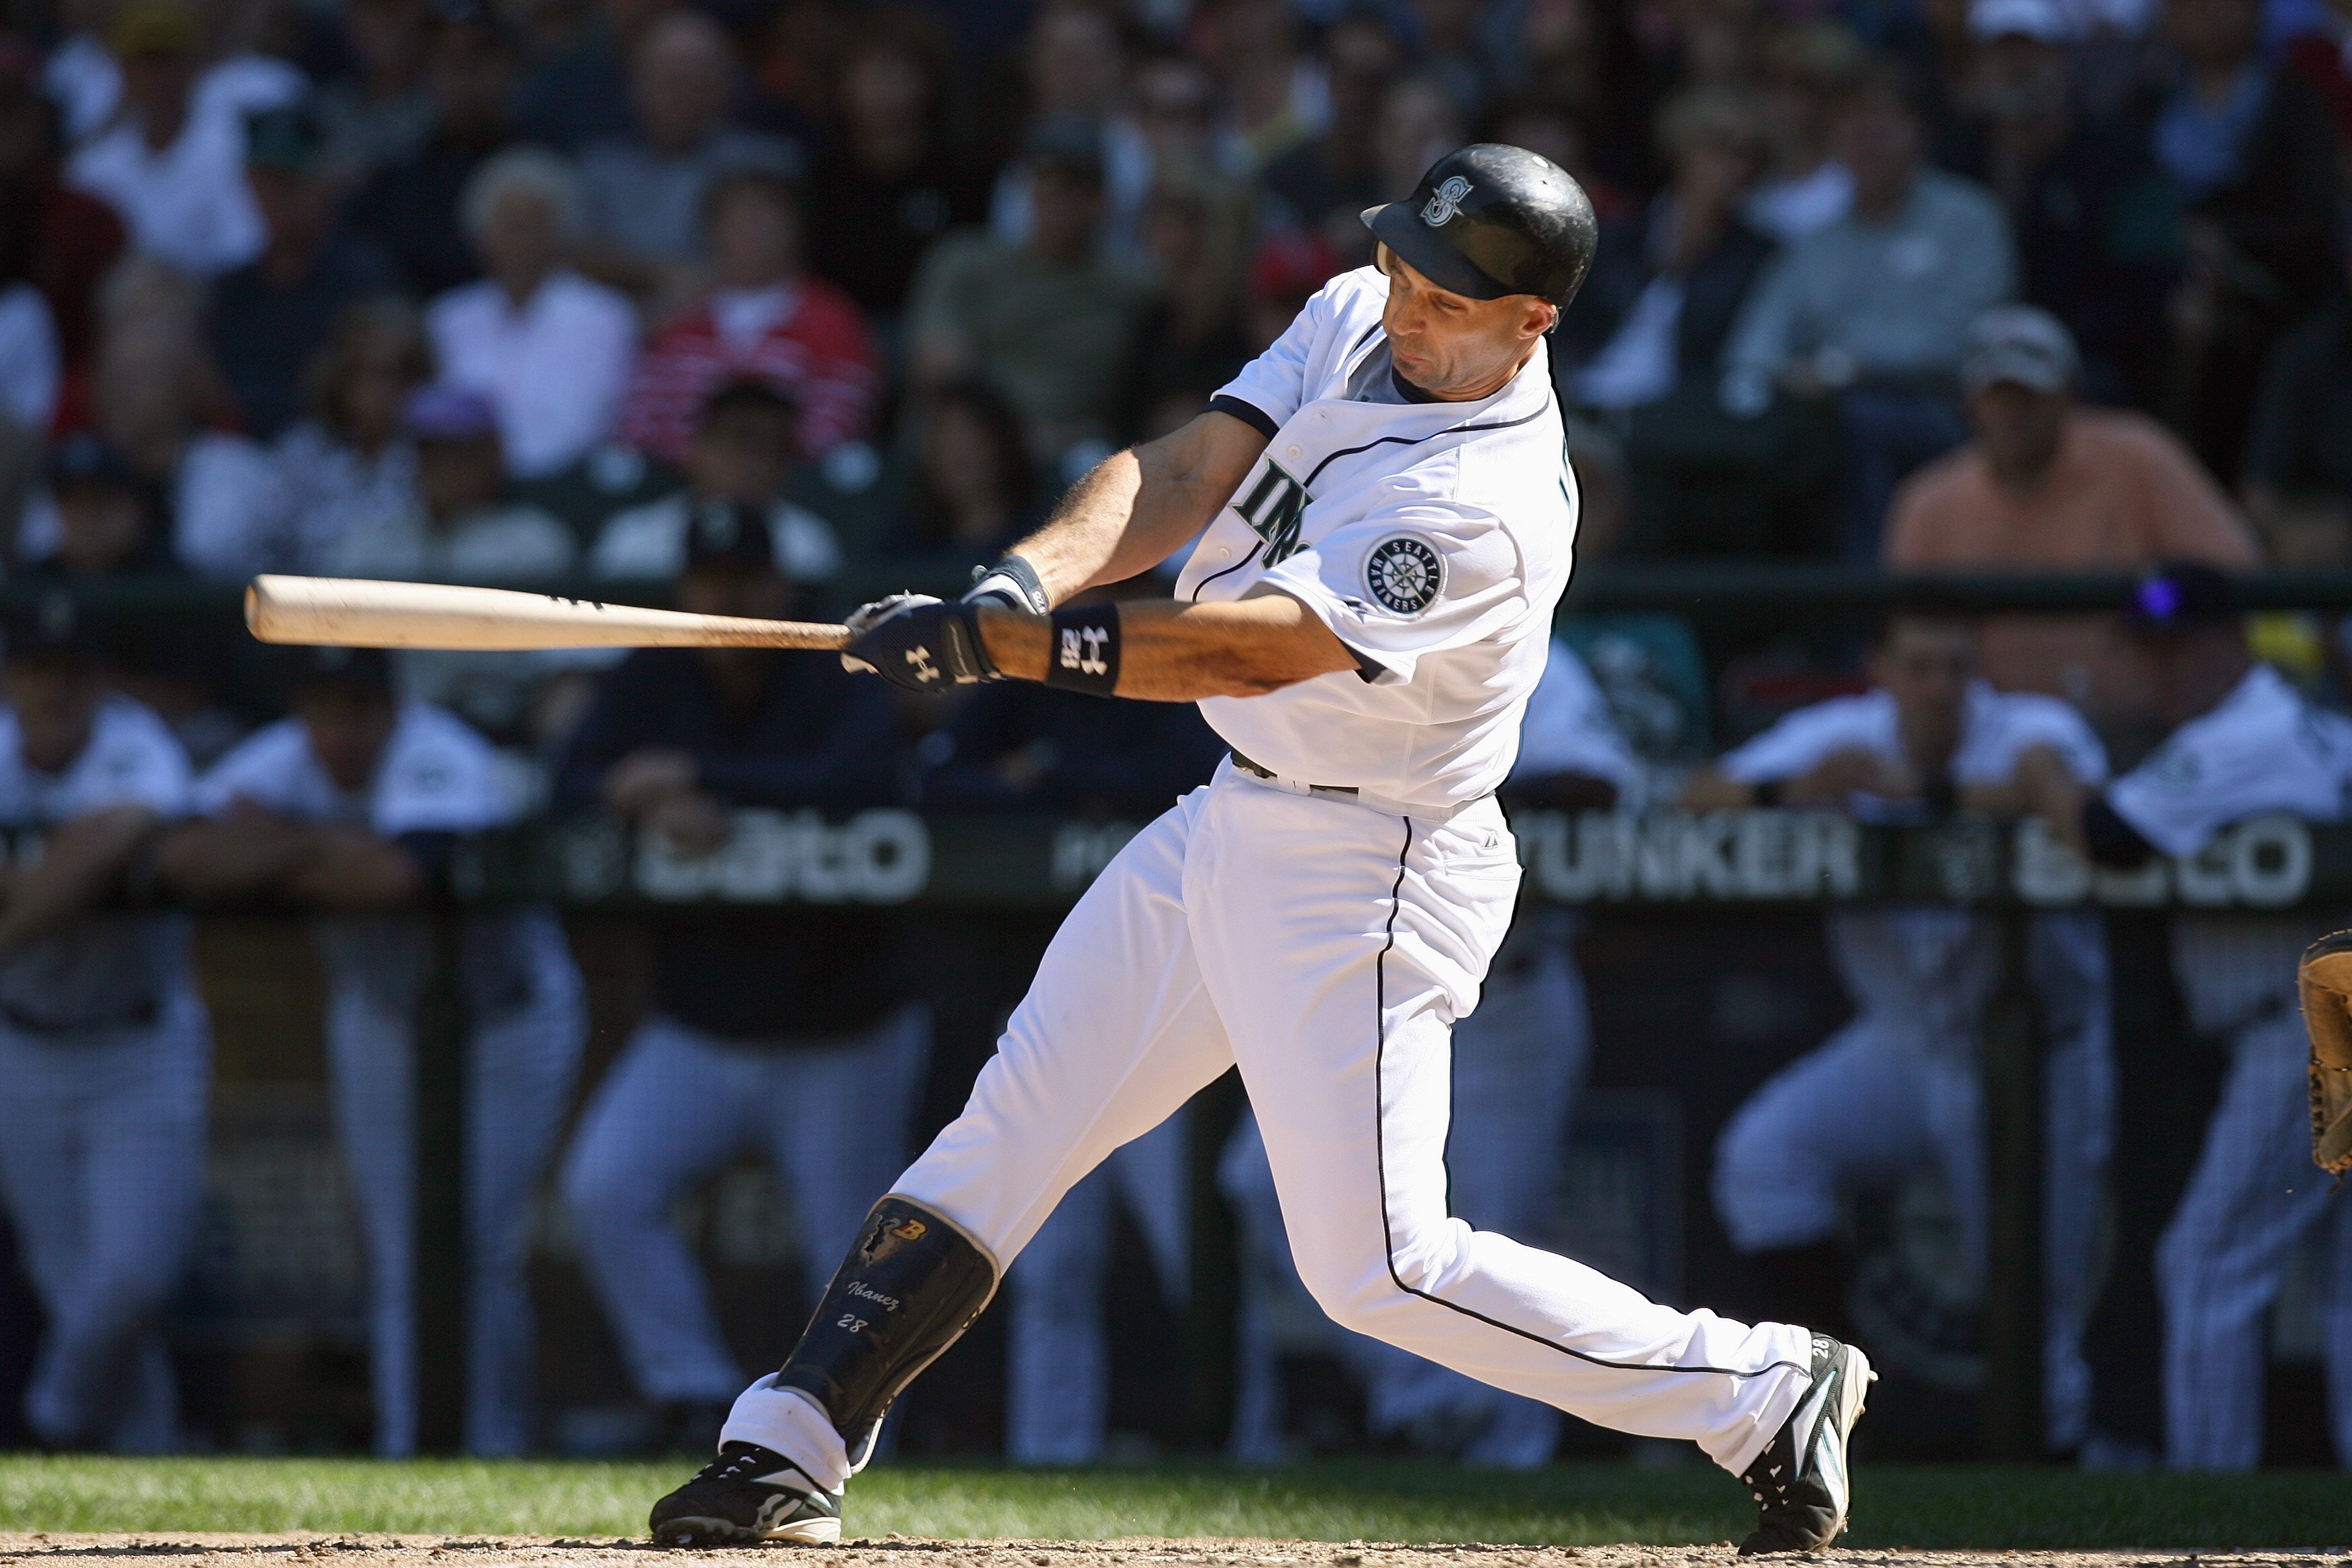 SEATTLE - SEPTEMBER 07:  Raul Ibanez #28 of the Seattle Mariners bats during the game against the New York Yankees on September 7, 2008 at Safeco Field in Seattle Washington. (Photo by Otto Greule Jr/Getty Images)